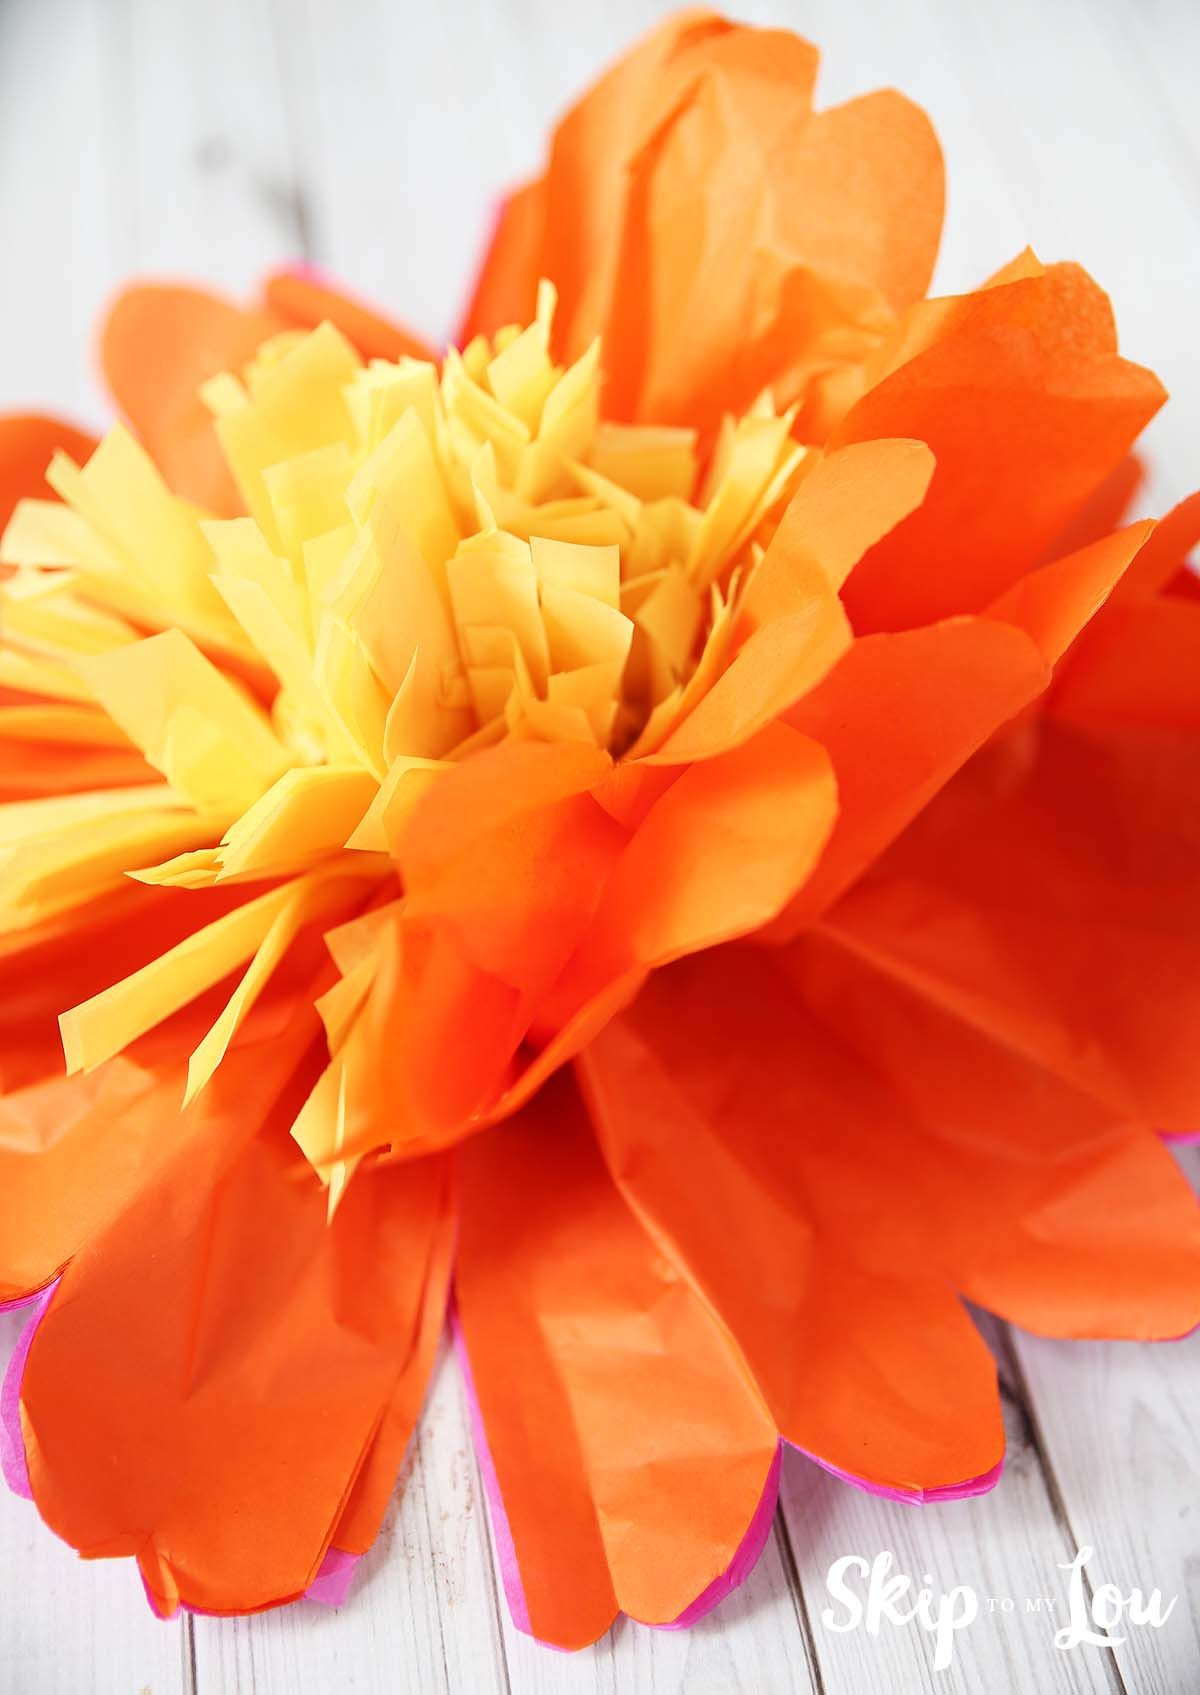 How To Make Tissue Paper Flowers Skip To My Lou Skip To My Lou